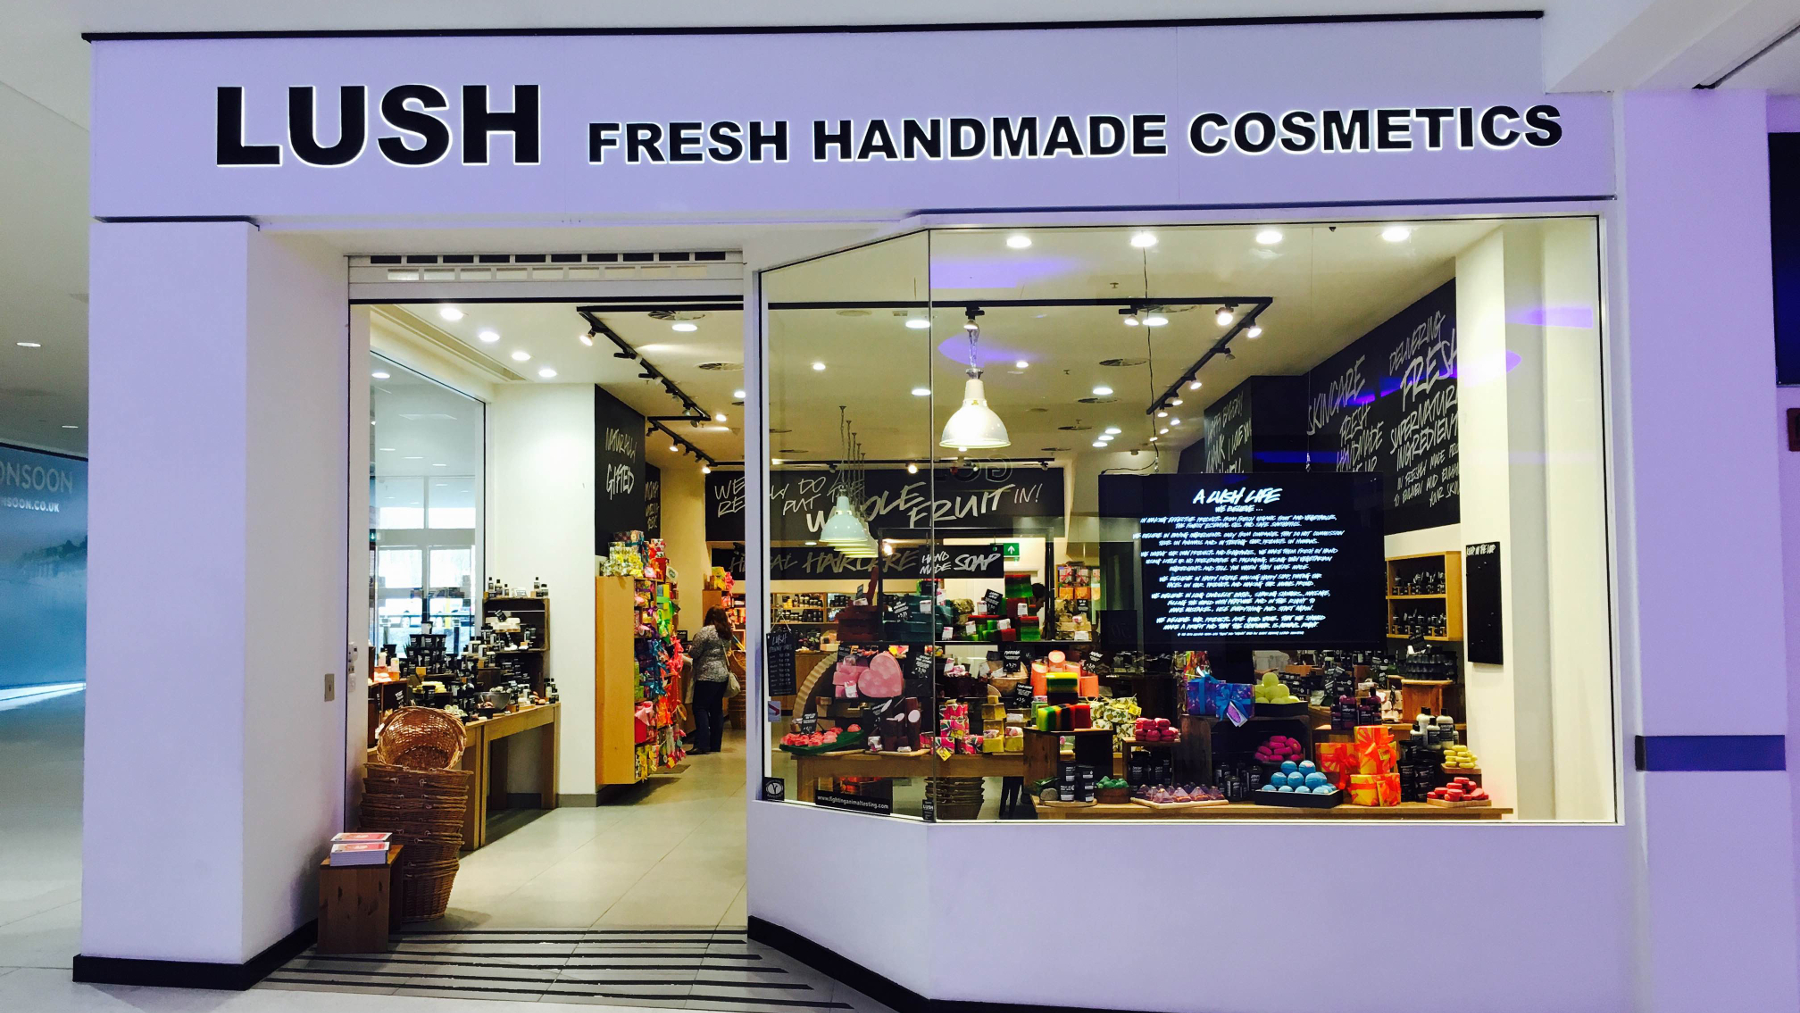 Portsmouth | Lush Fresh Handmade Cosmetics UK